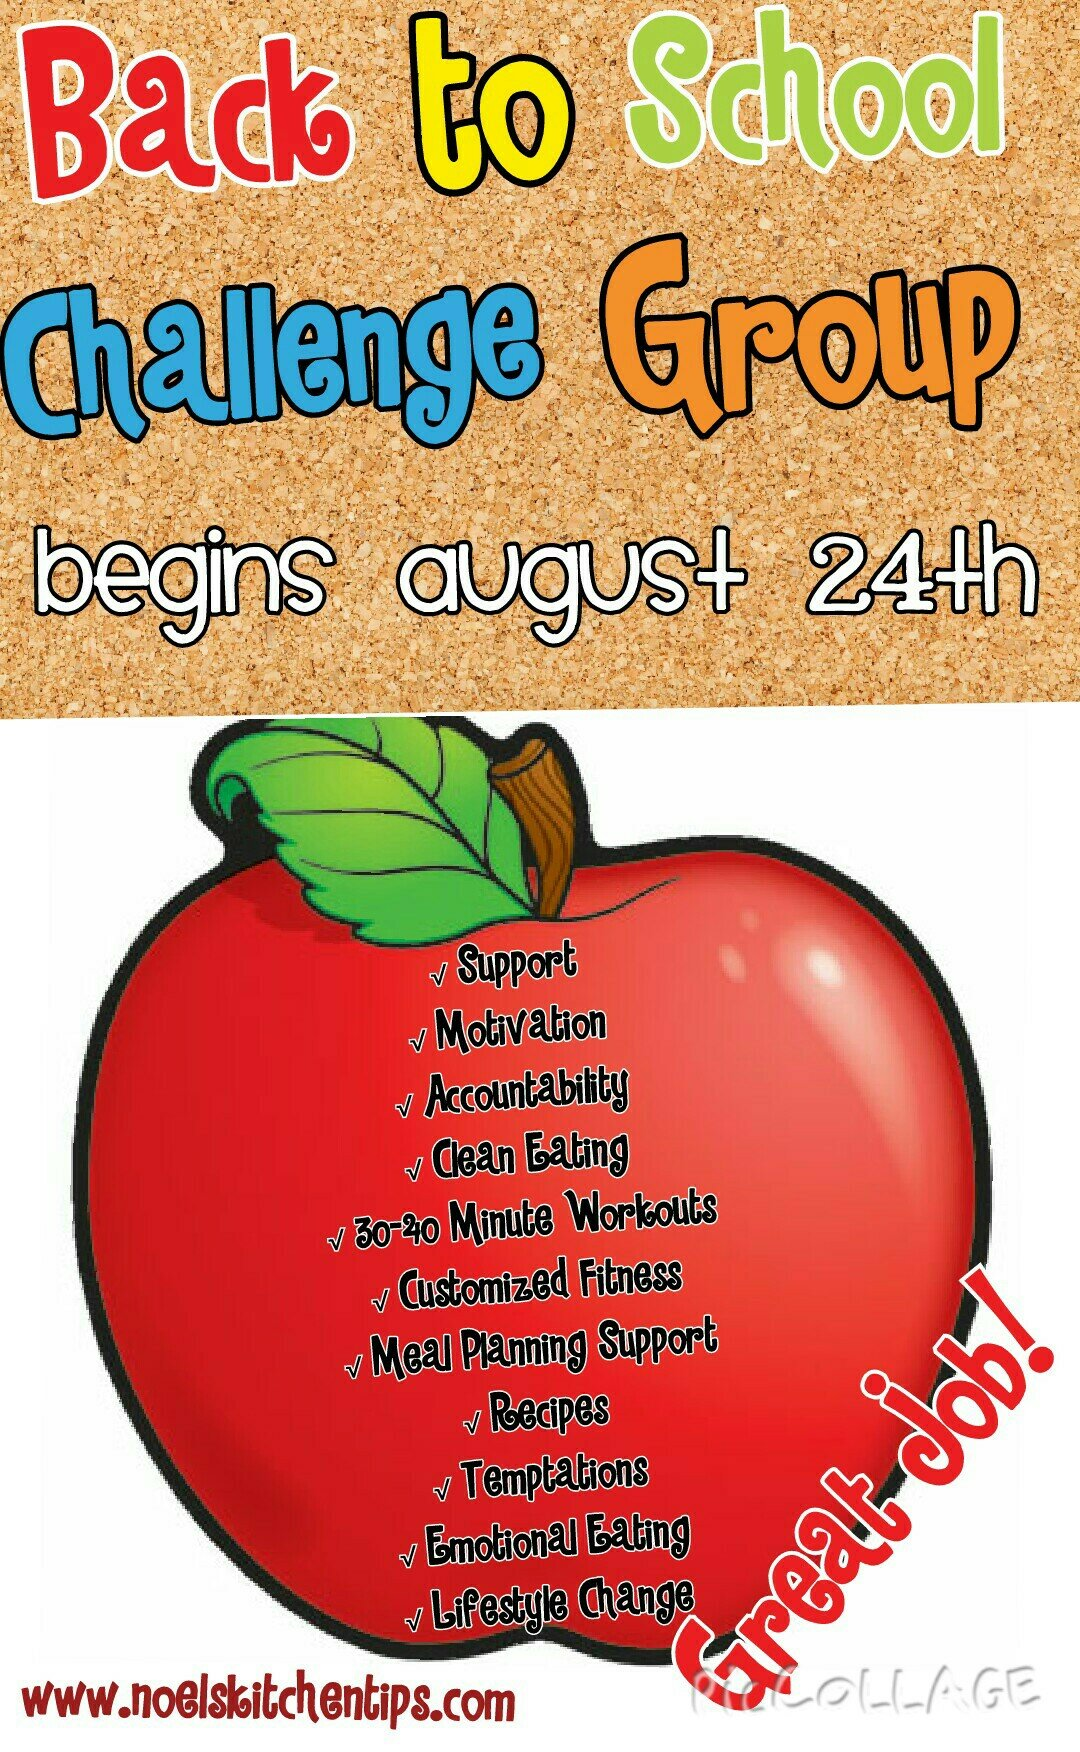 Back To School Challenge Group!